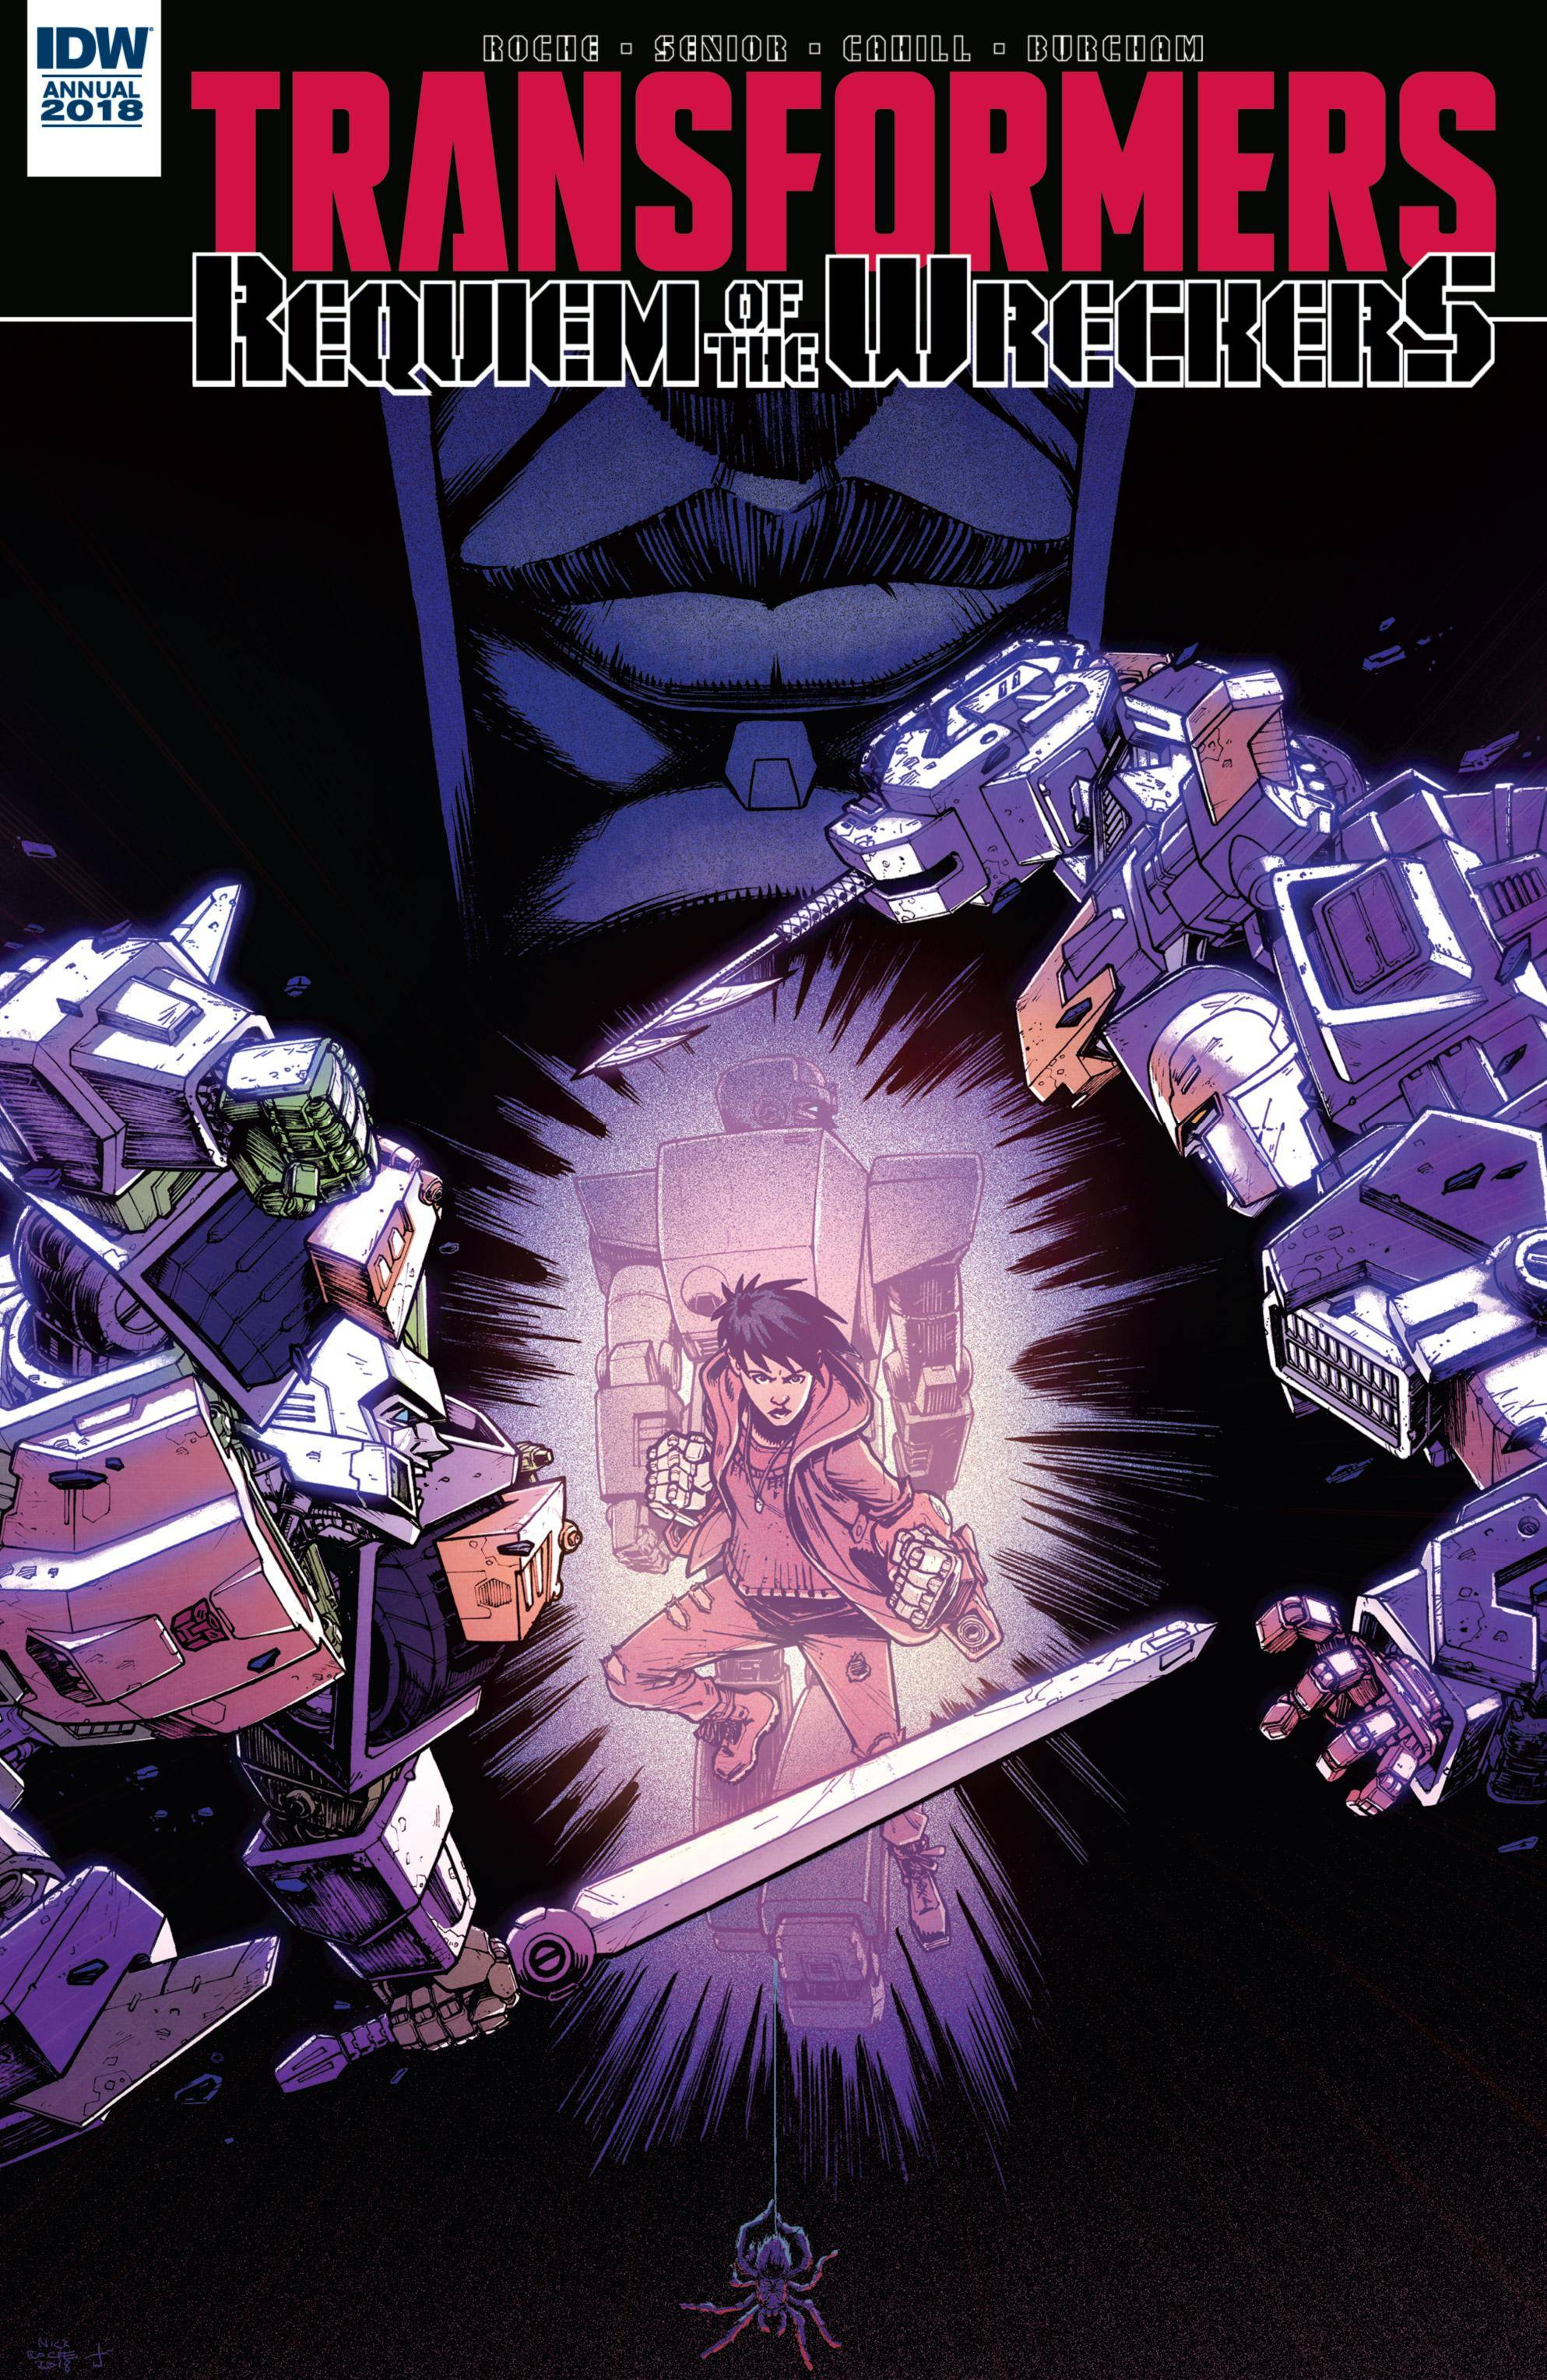 Transformers-Requiem.of.the.Wreckers.Annual.2018.digital.Knight.Ripper-Empire